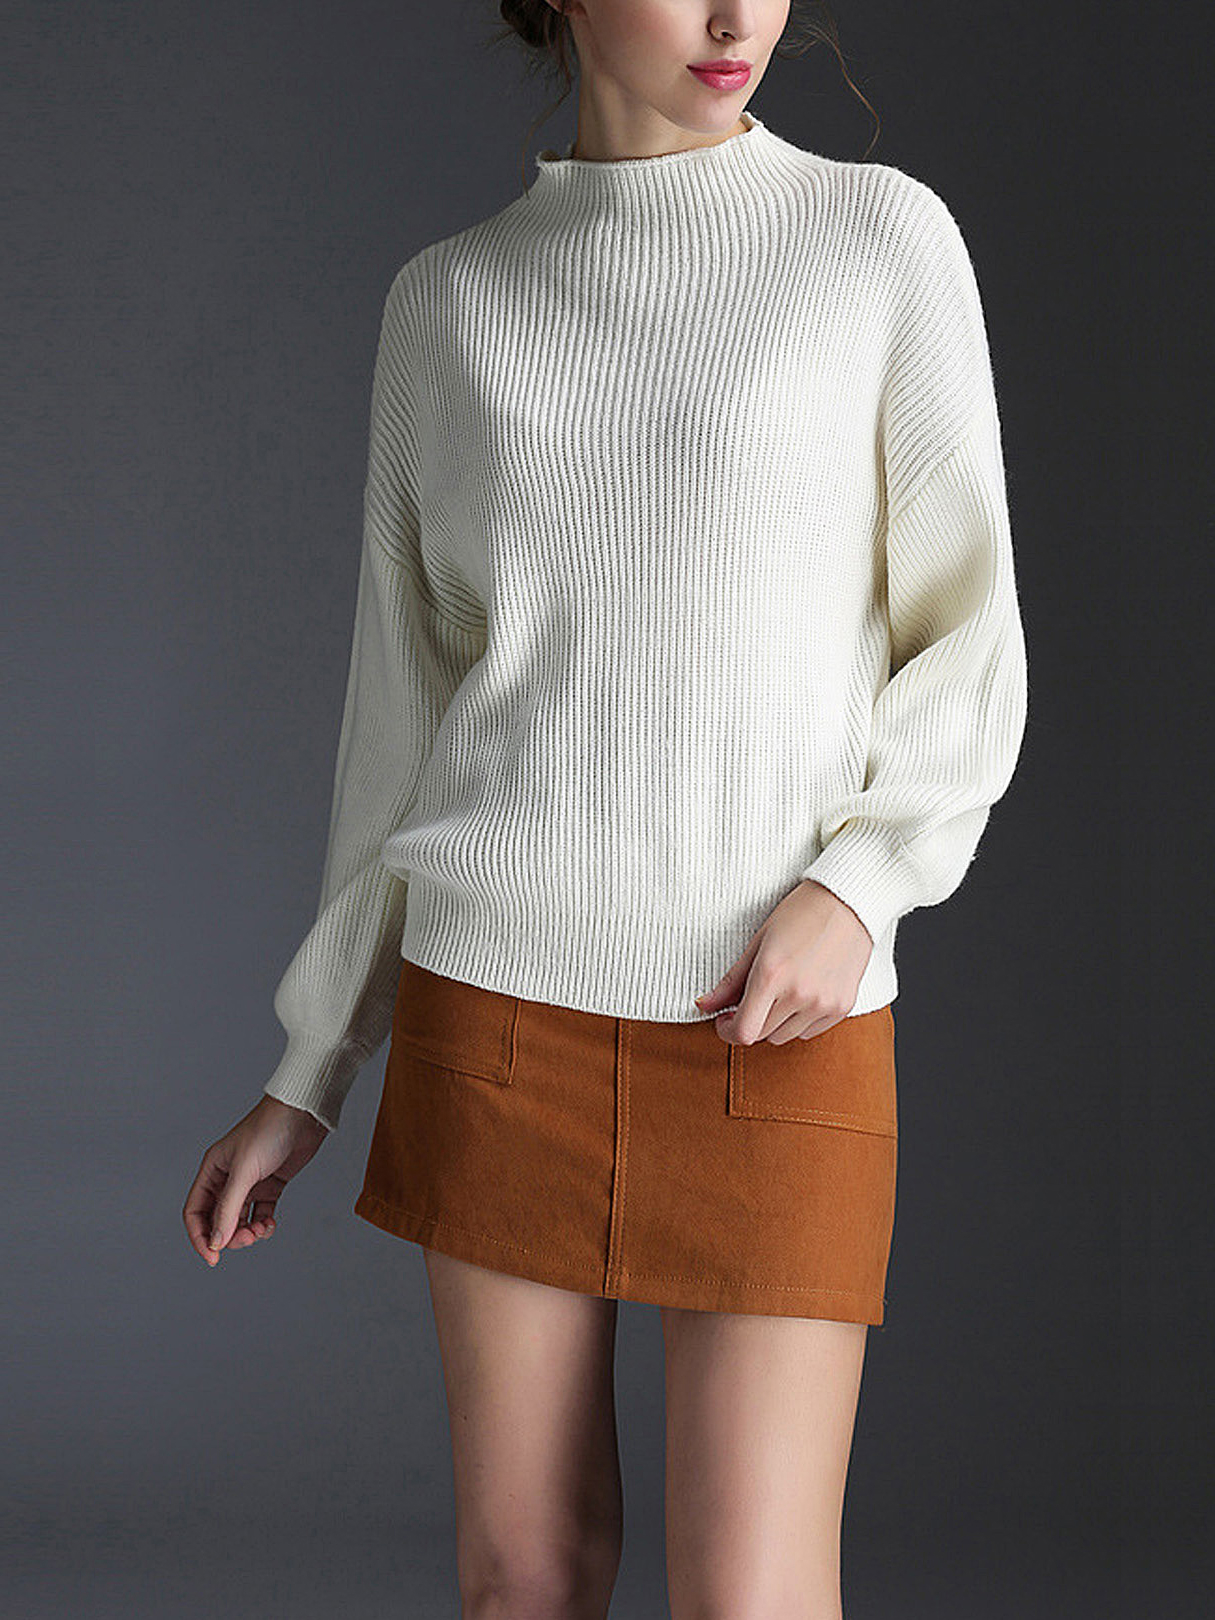 91c029ed4 High Neck Sweater   Mini Skirt Two-Piece Co-ords - US 44.95 -YOINS